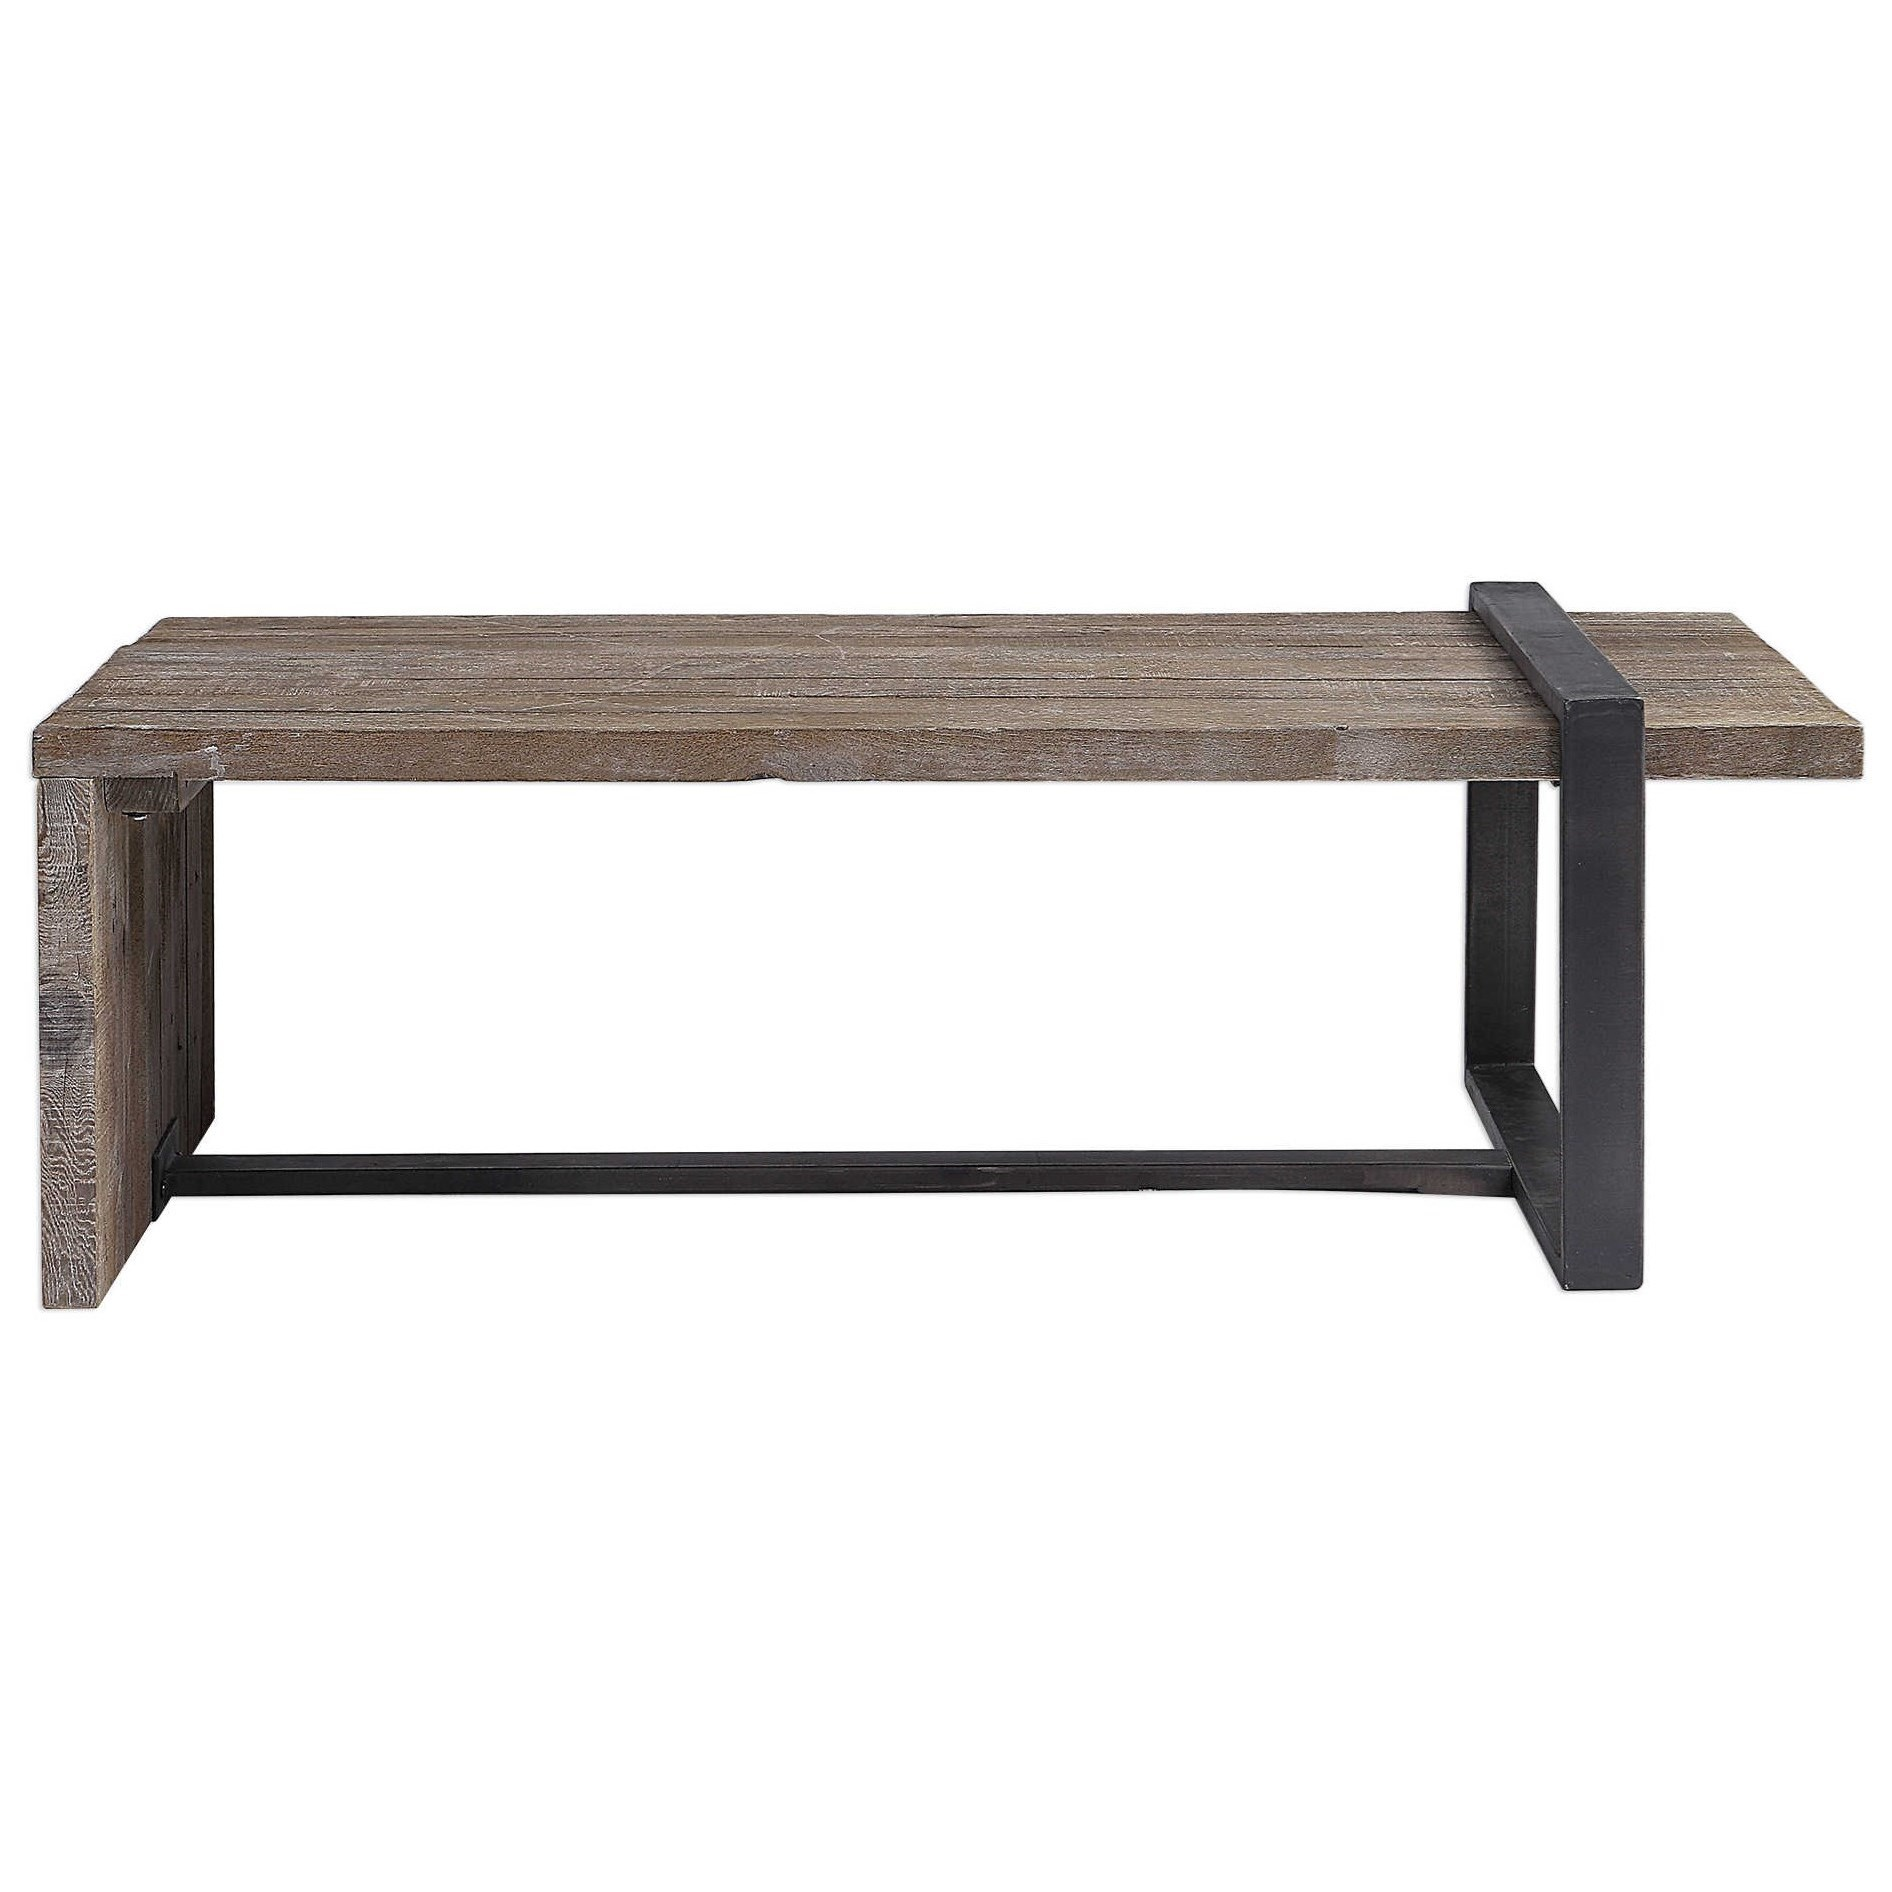 Accent Furniture - Occasional Tables Genero Weathered Coffee Table by Uttermost at Factory Direct Furniture